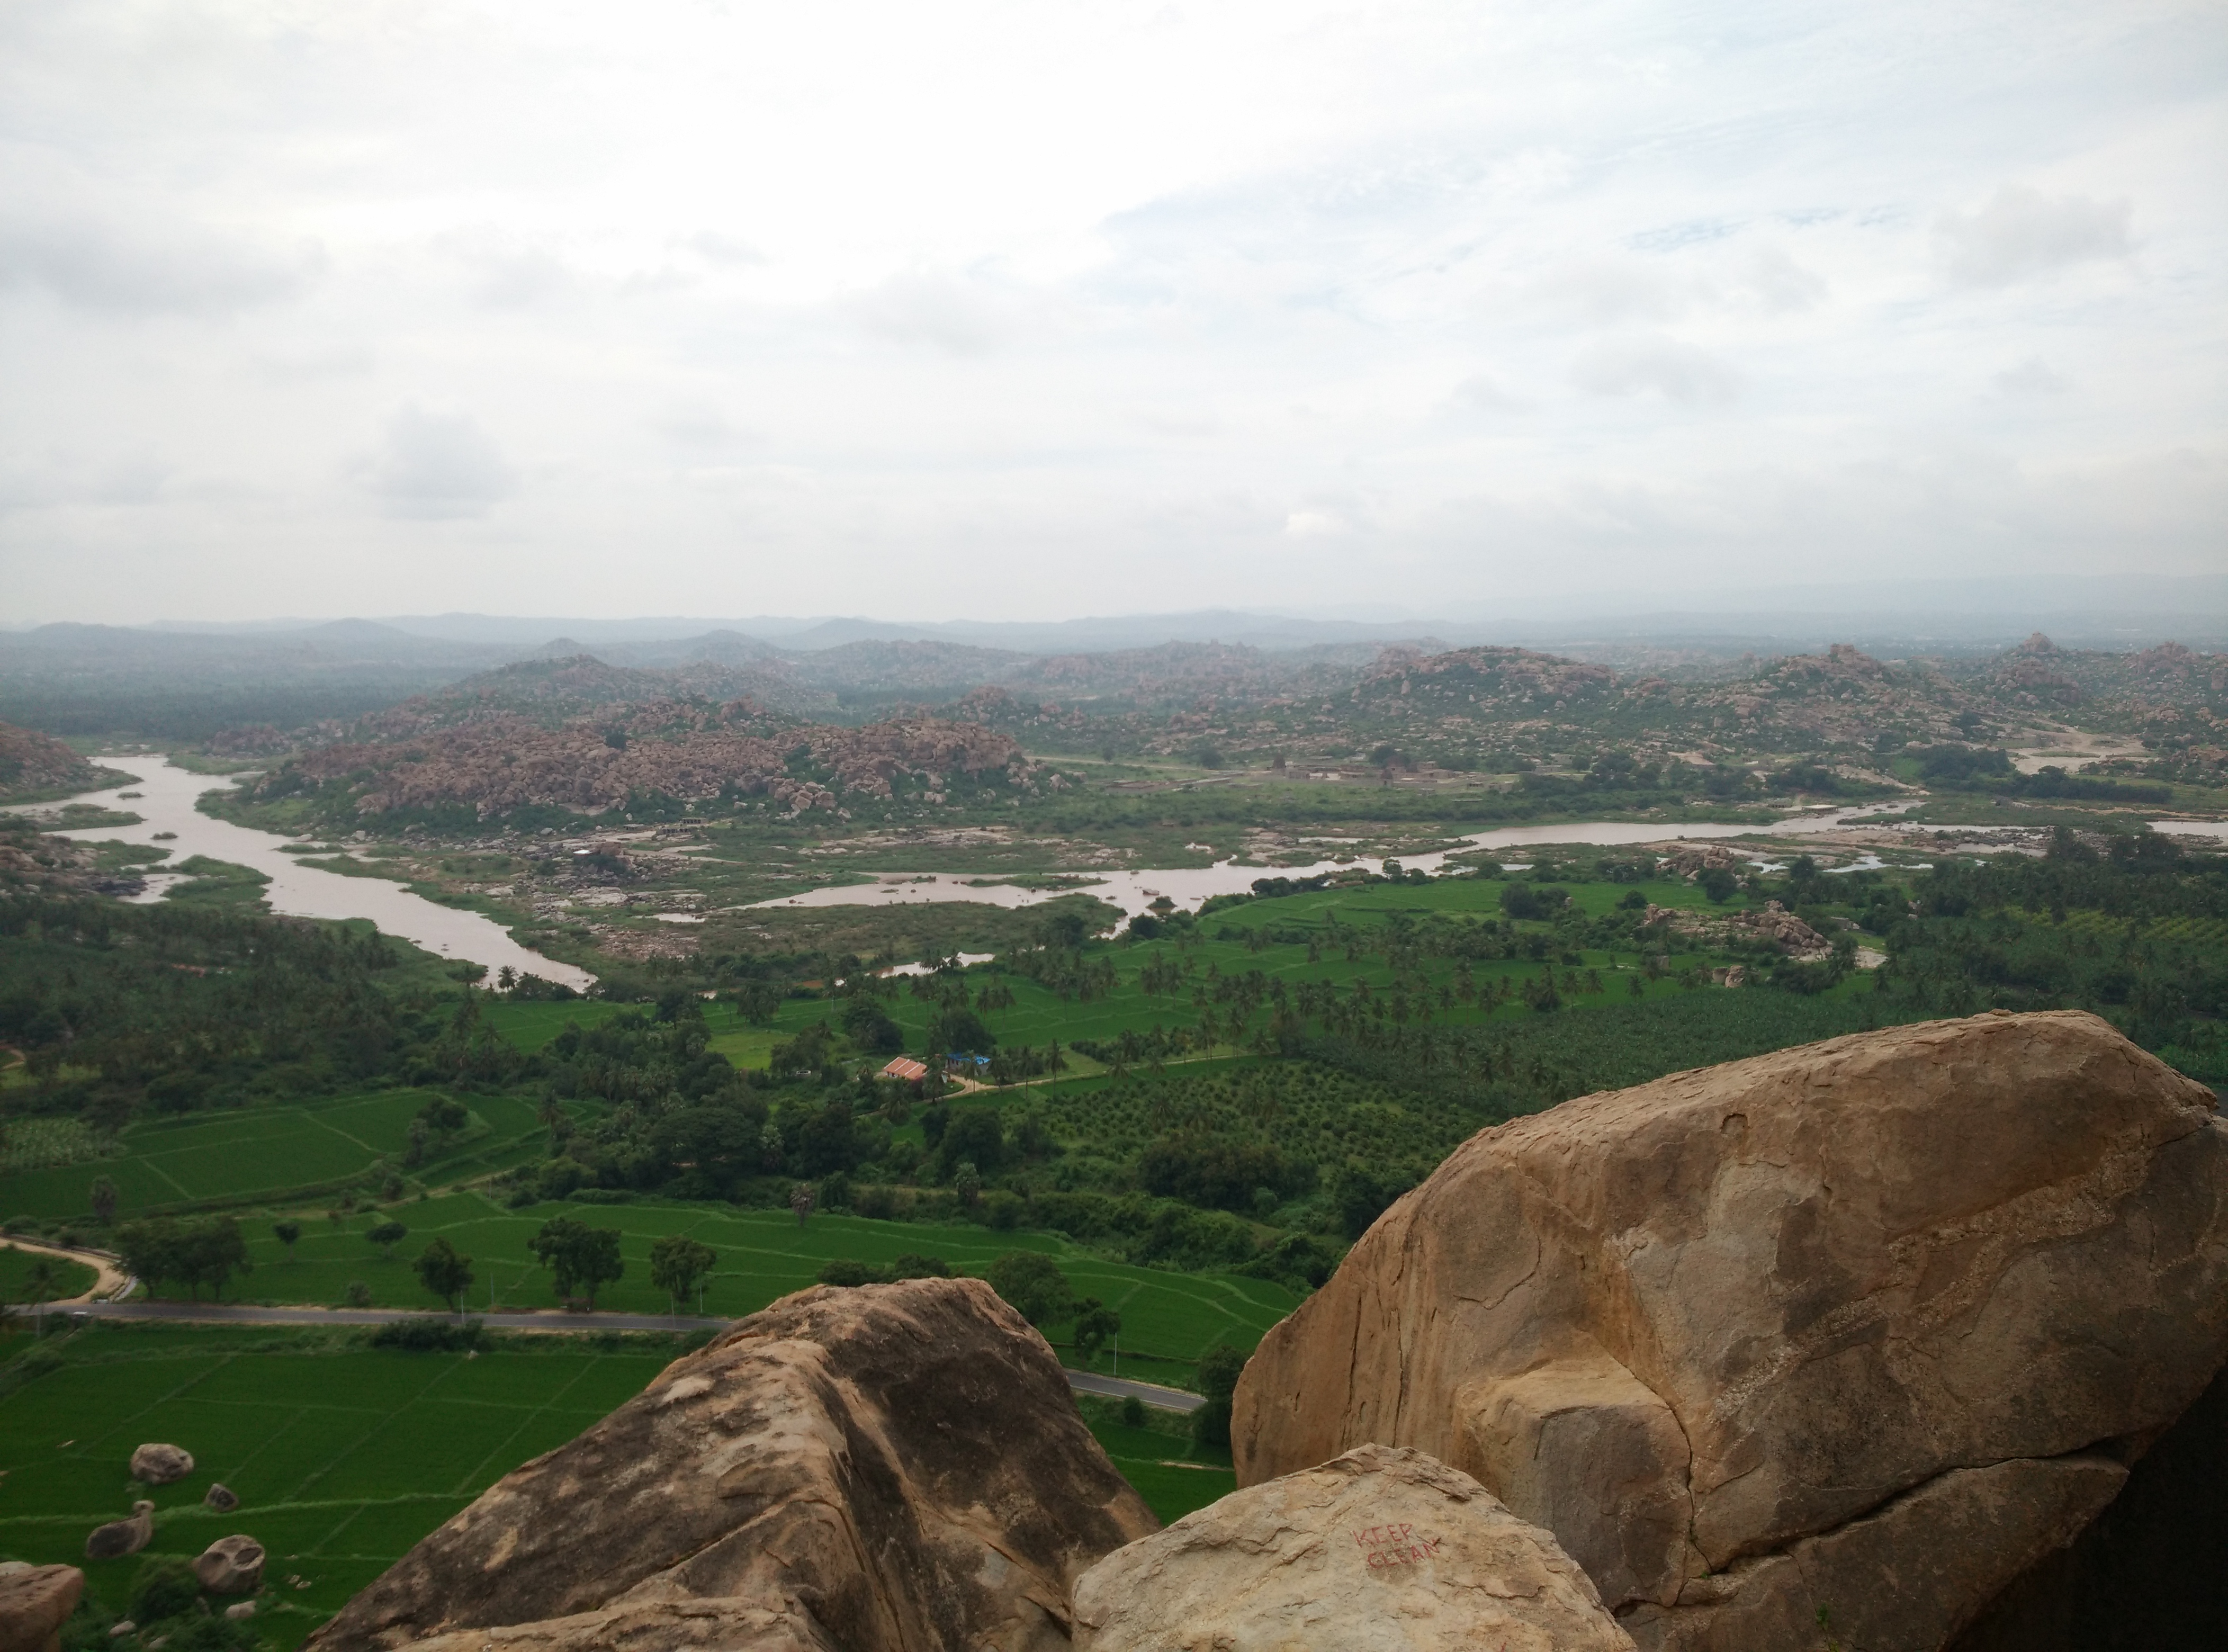 Anegundi.. The twin city of Hampi